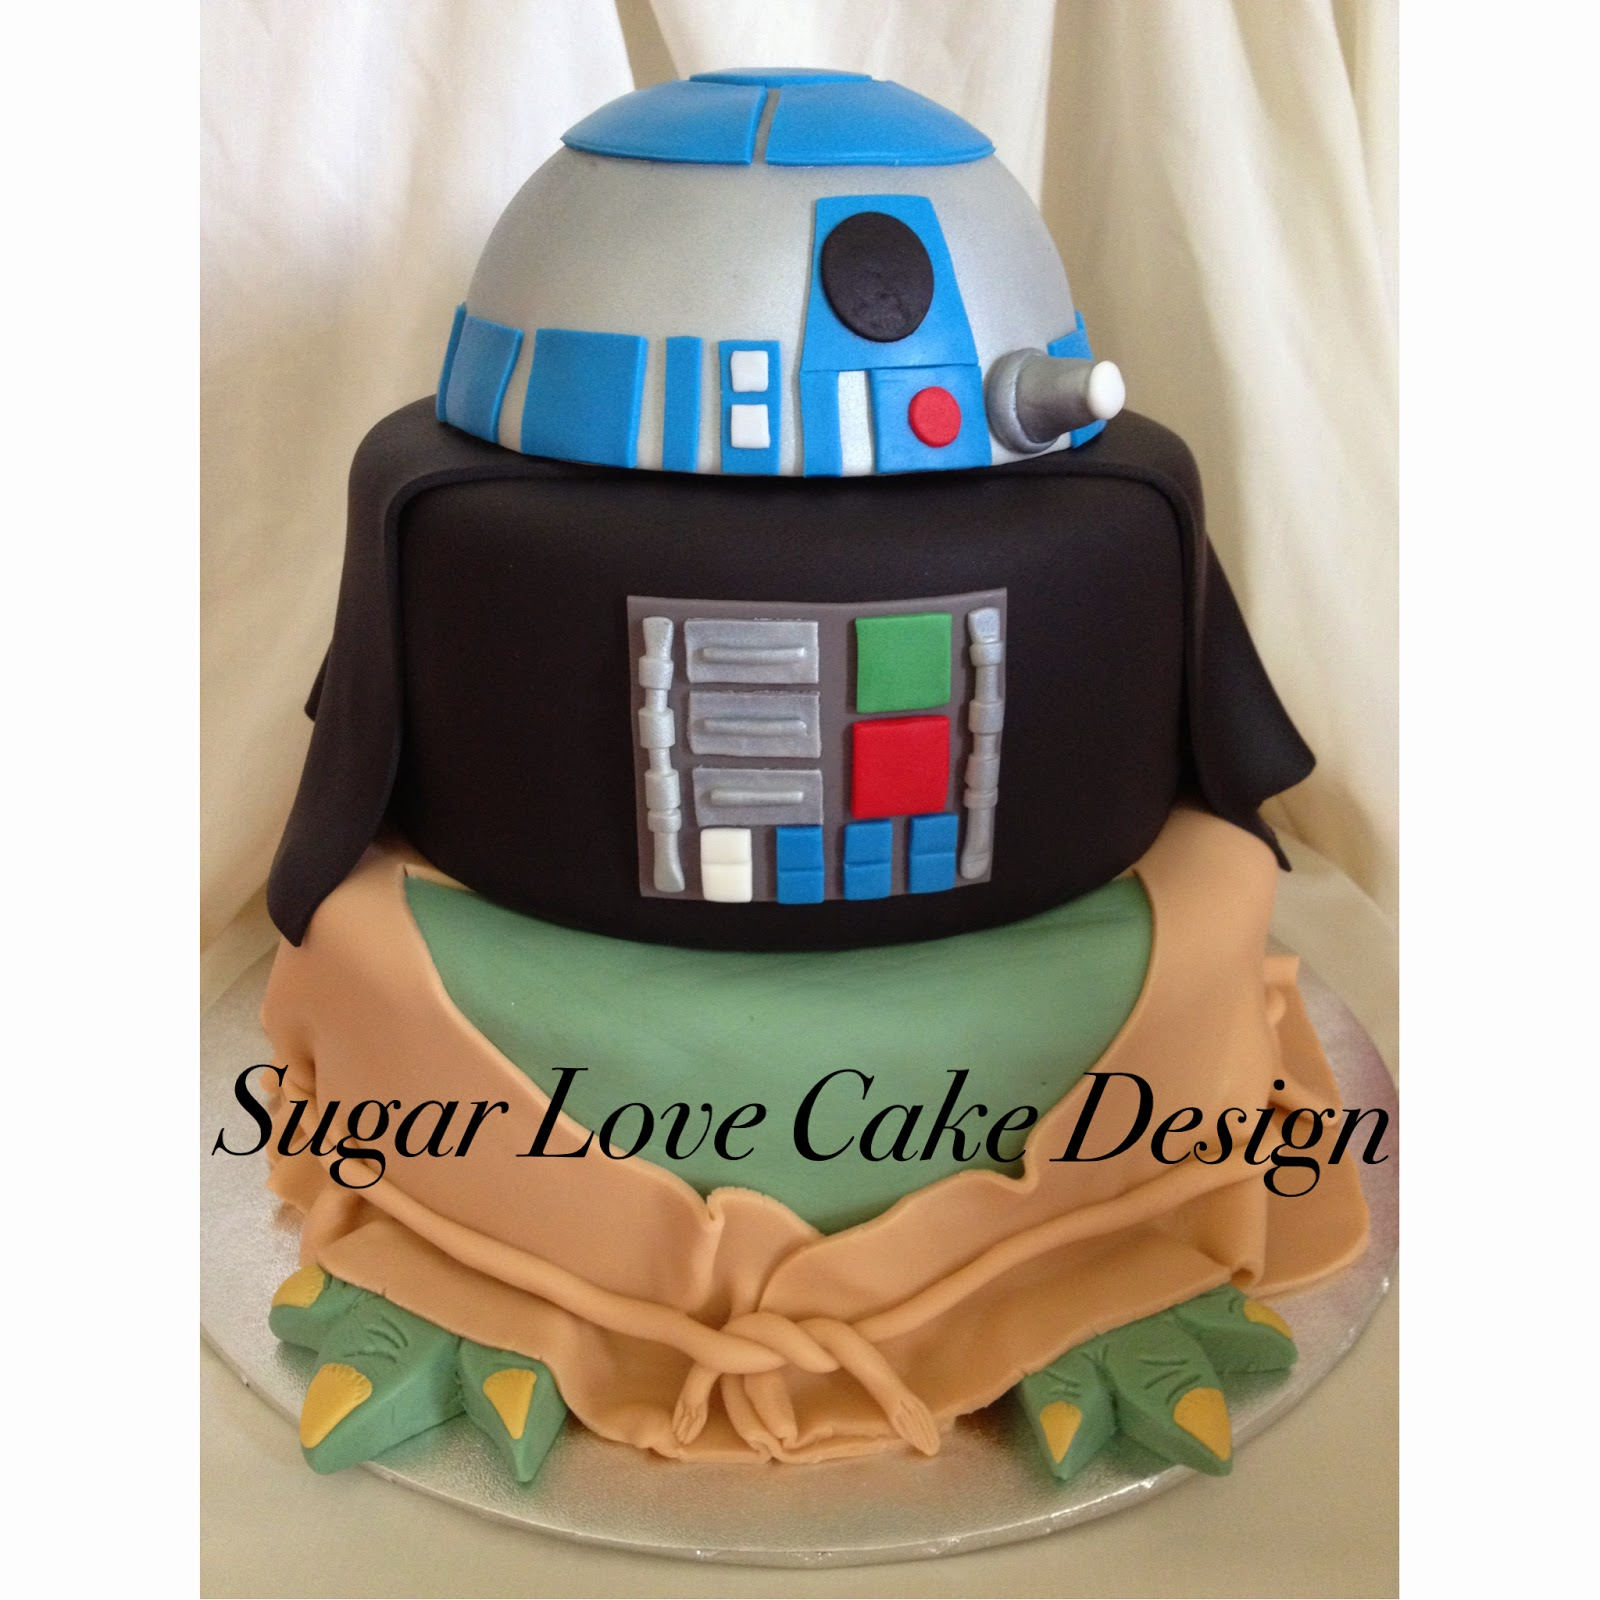 Images Of A Star Wars Cake : Sugar Love Cake Design: Star Wars cake